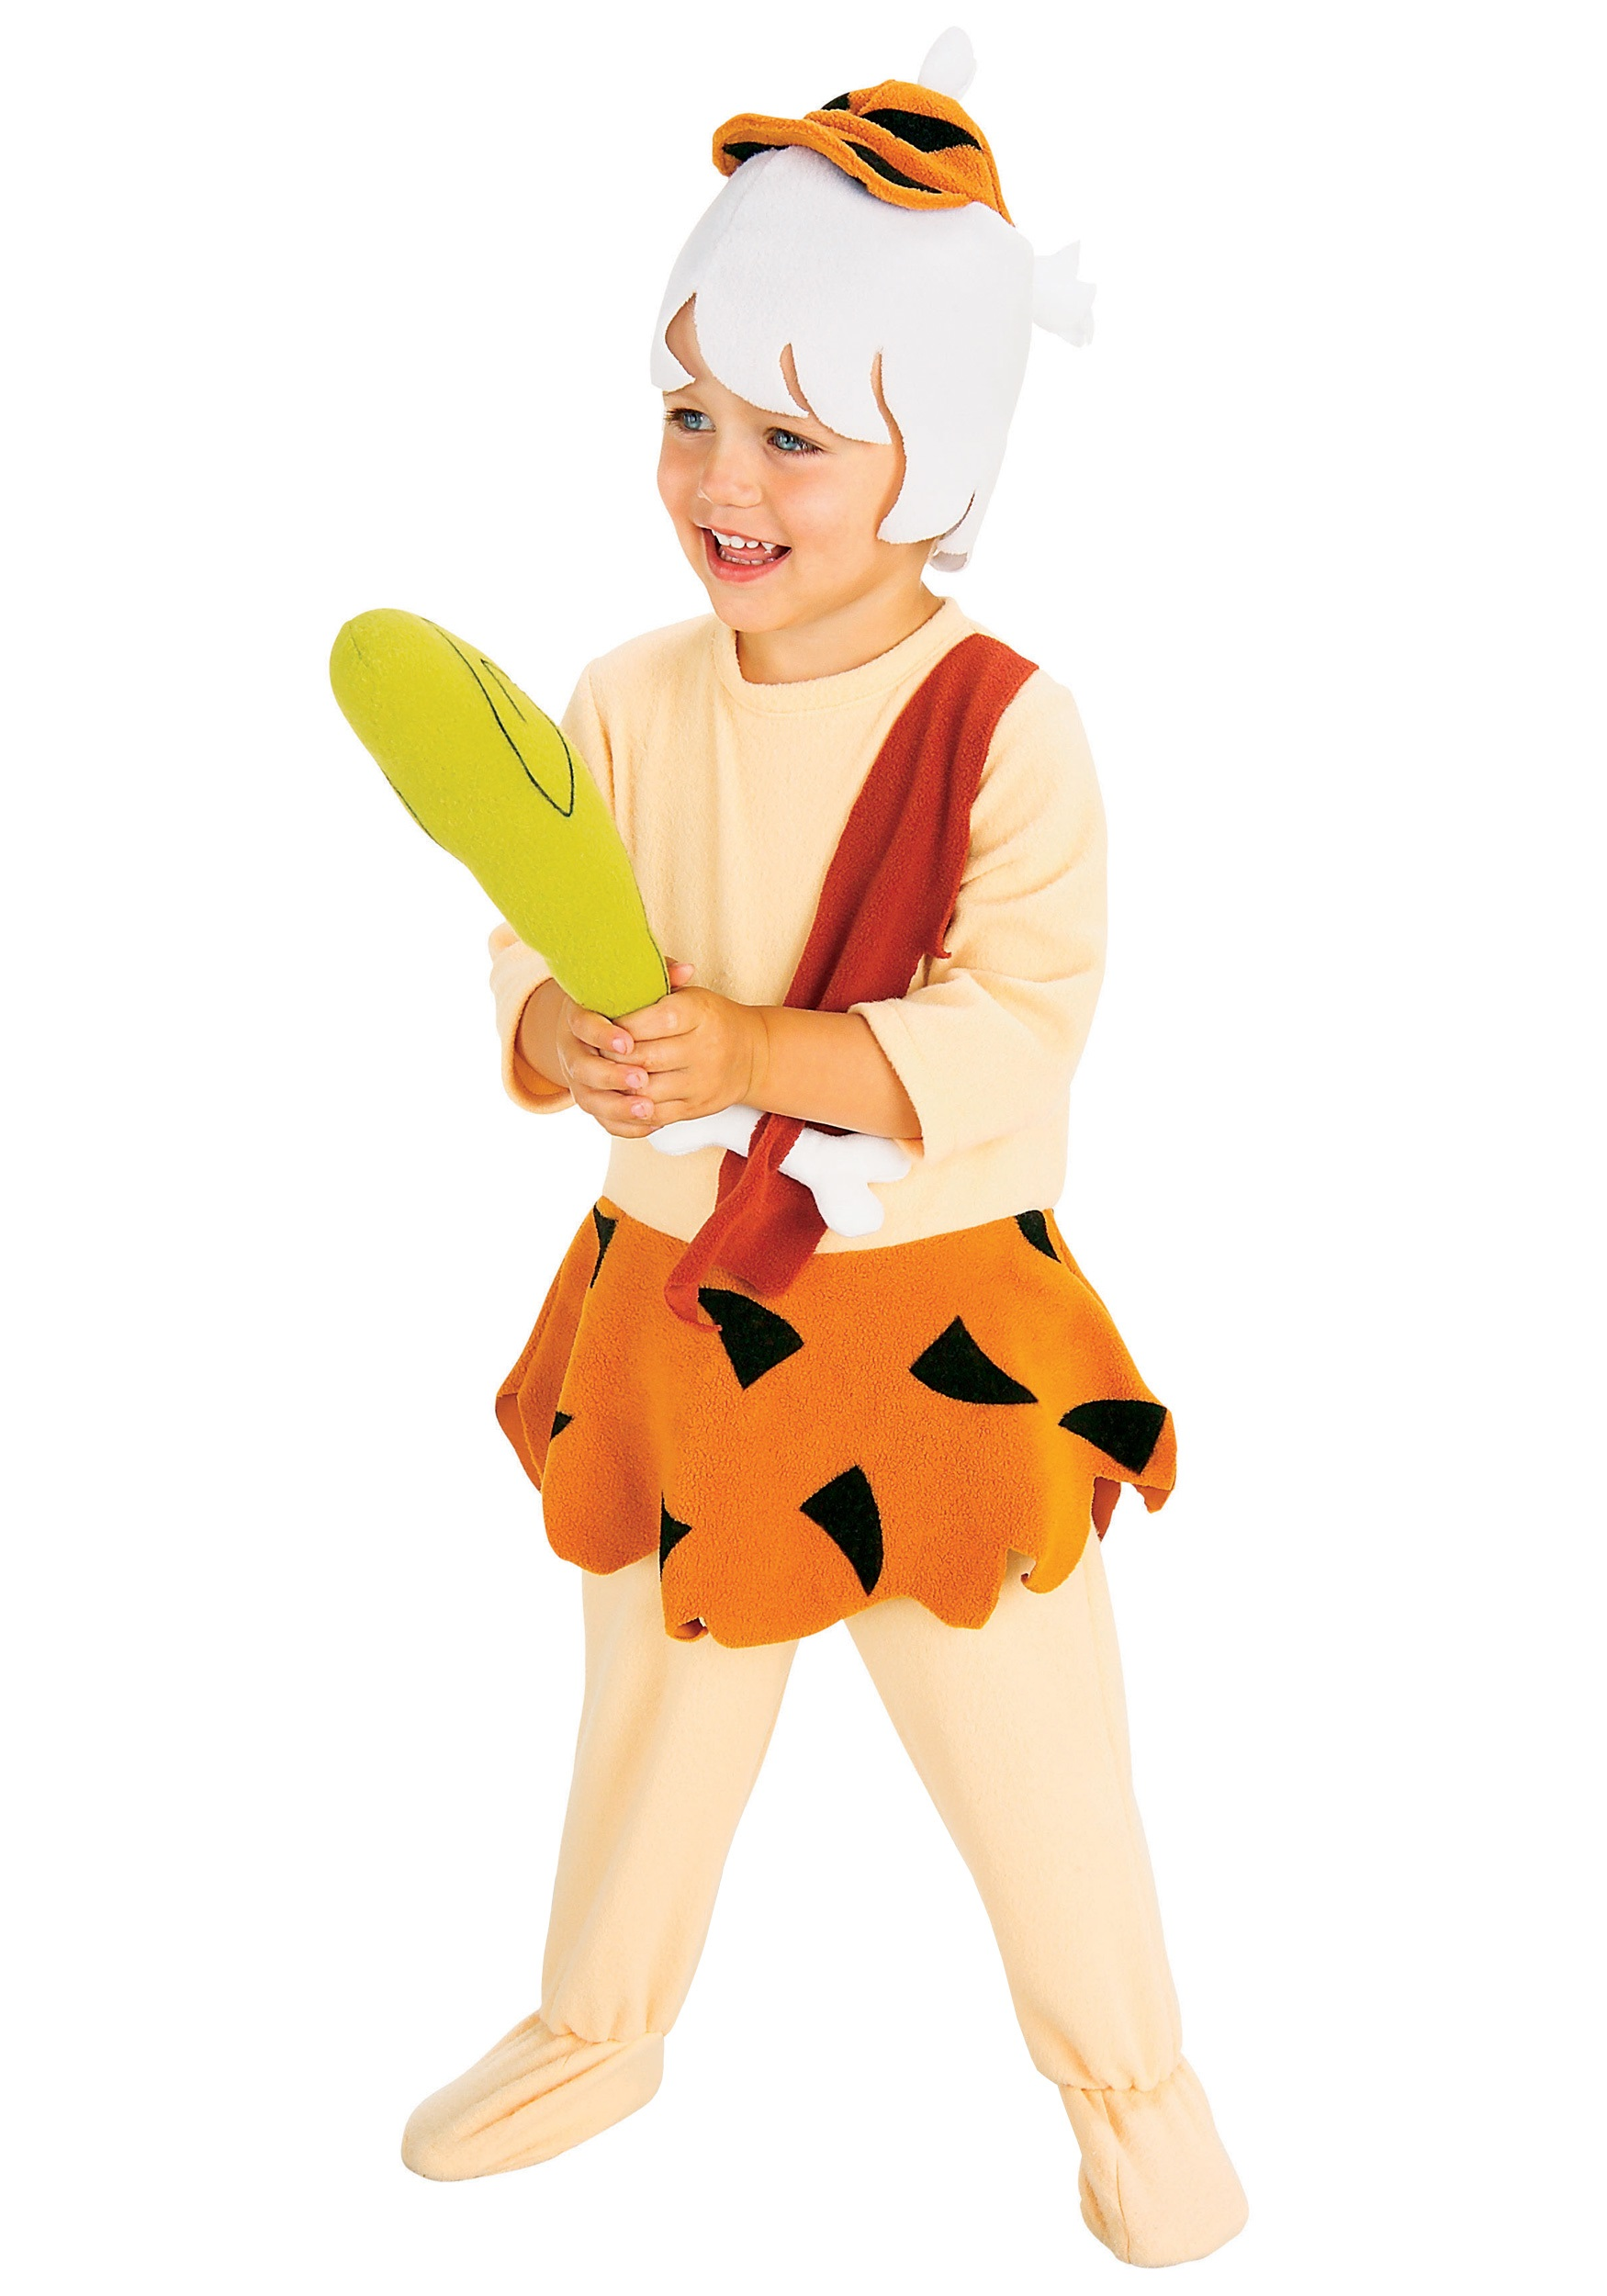 Bam Bam Toddler Costume - Flintstones Bamm Bamm Rubble Costumes